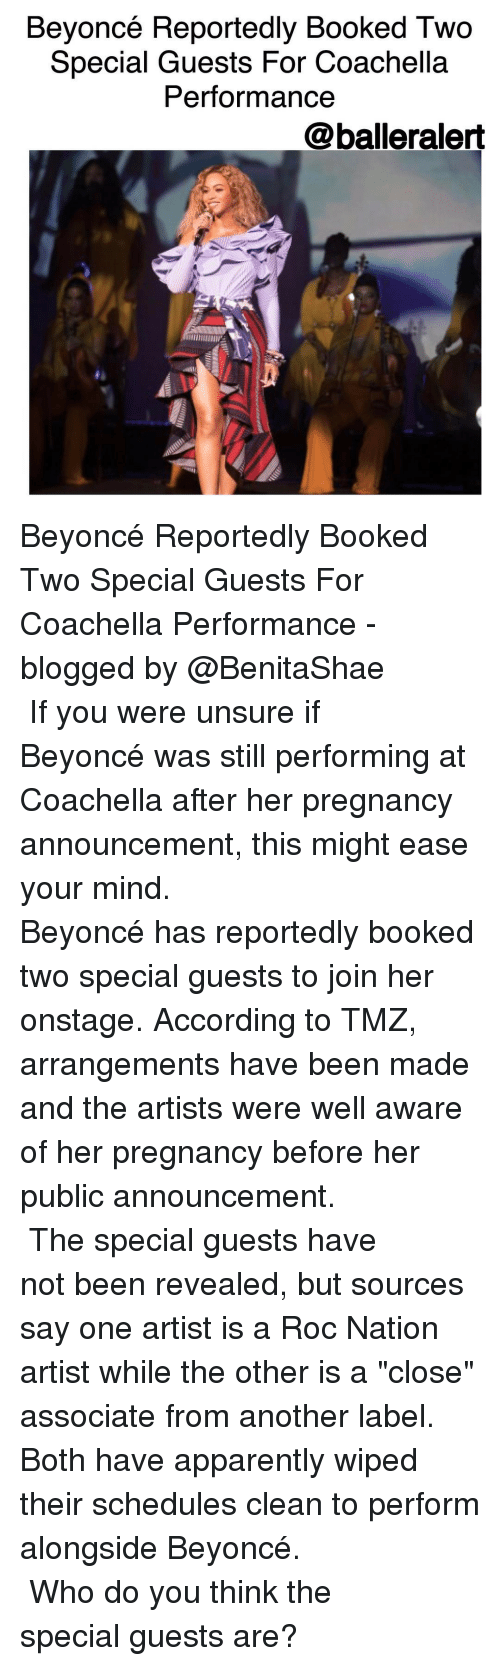 """Unsureness: Beyoncé Reportedly Booked Two  Special Guests For Coachella  Performance  @balleralert Beyoncé Reportedly Booked Two Special Guests For Coachella Performance -blogged by @BenitaShae ⠀⠀⠀⠀⠀⠀⠀⠀⠀ ⠀⠀⠀⠀⠀⠀⠀⠀⠀ If you were unsure if Beyoncé was still performing at Coachella after her pregnancy announcement, this might ease your mind. ⠀⠀⠀⠀⠀⠀⠀⠀⠀ ⠀⠀⠀⠀⠀⠀⠀⠀⠀ Beyoncé has reportedly booked two special guests to join her onstage. According to TMZ, arrangements have been made and the artists were well aware of her pregnancy before her public announcement. ⠀⠀⠀⠀⠀⠀⠀⠀⠀ ⠀⠀⠀⠀⠀⠀⠀⠀⠀ The special guests have not been revealed, but sources say one artist is a Roc Nation artist while the other is a """"close"""" associate from another label. Both have apparently wiped their schedules clean to perform alongside Beyoncé. ⠀⠀⠀⠀⠀⠀⠀⠀⠀ ⠀⠀⠀⠀⠀⠀⠀⠀⠀ Who do you think the special guests are?"""